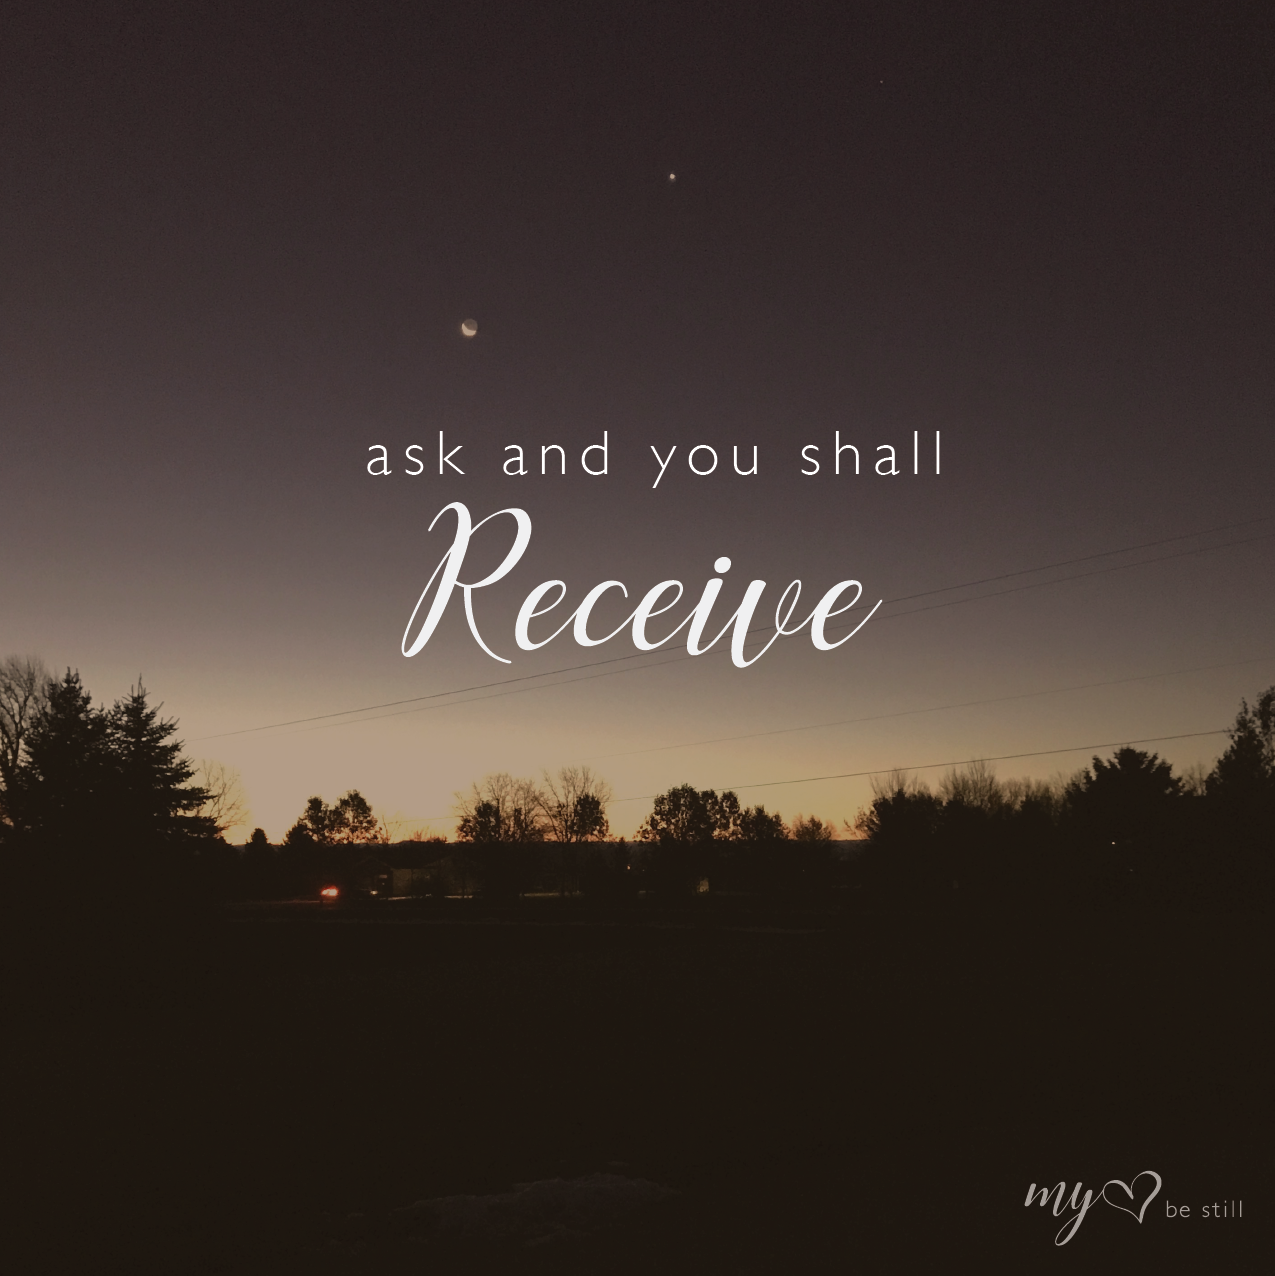 ask and receive-02.png